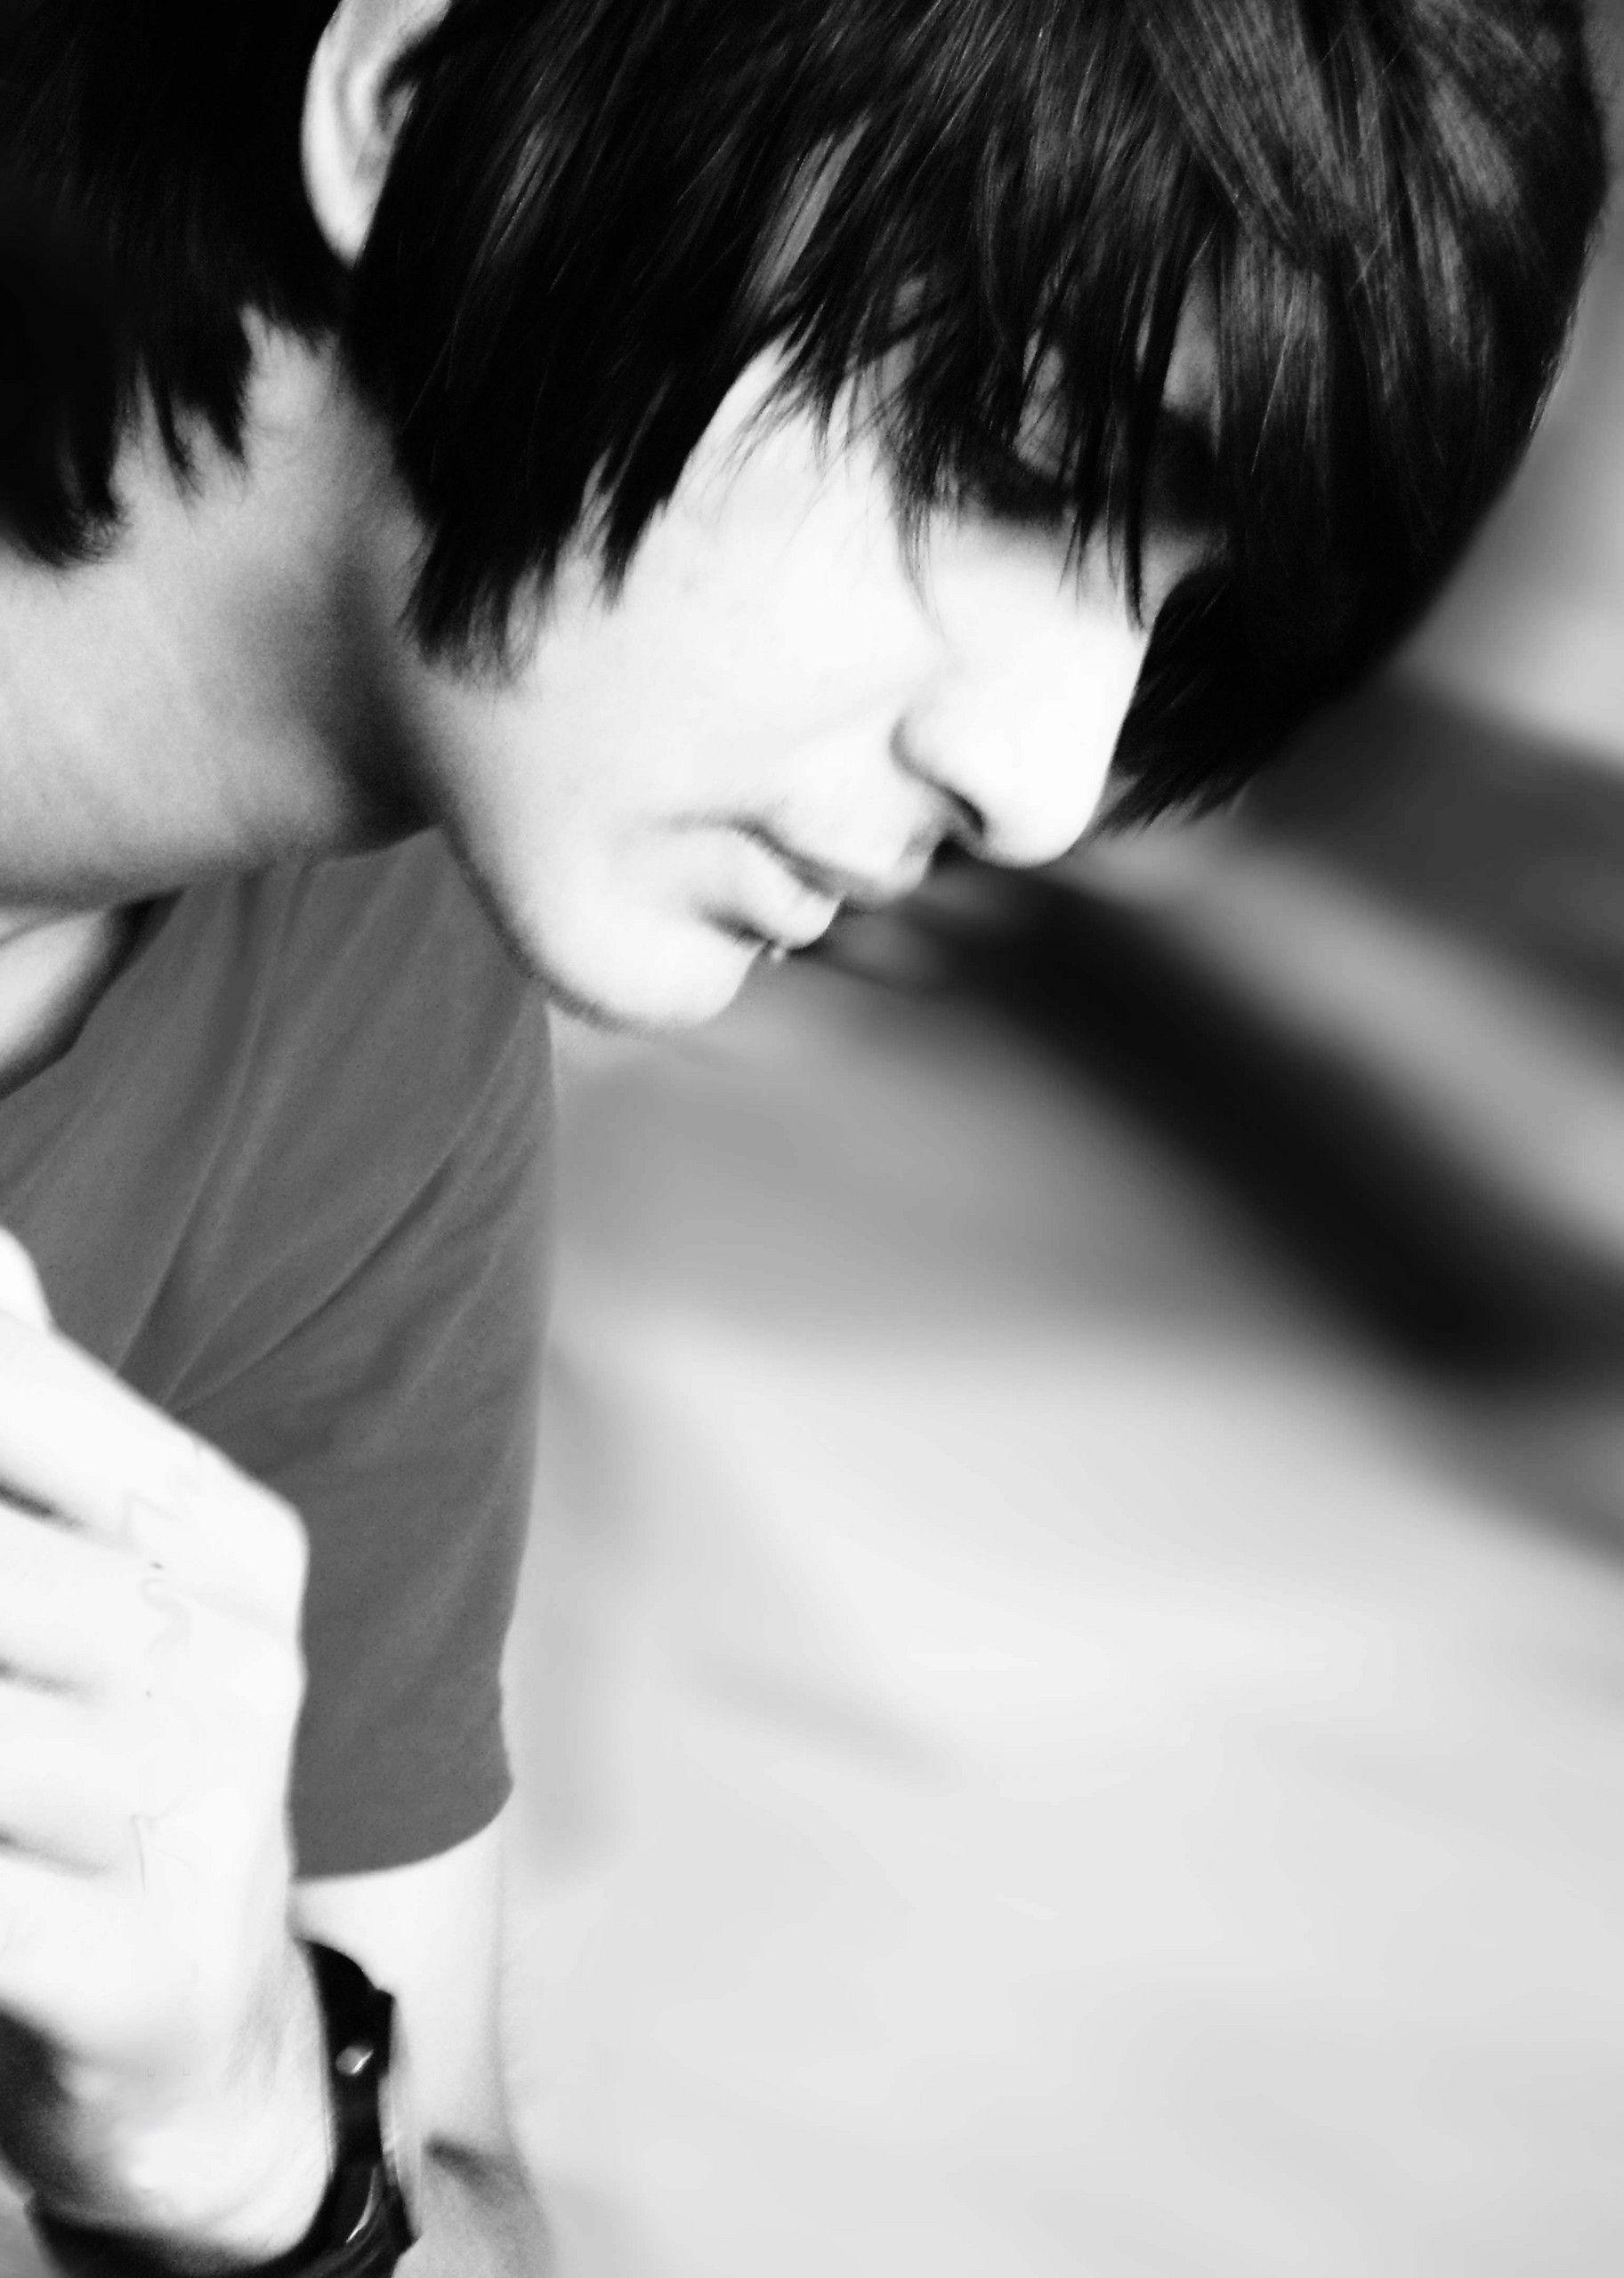 Sad Emo Boy HD Wallpapers